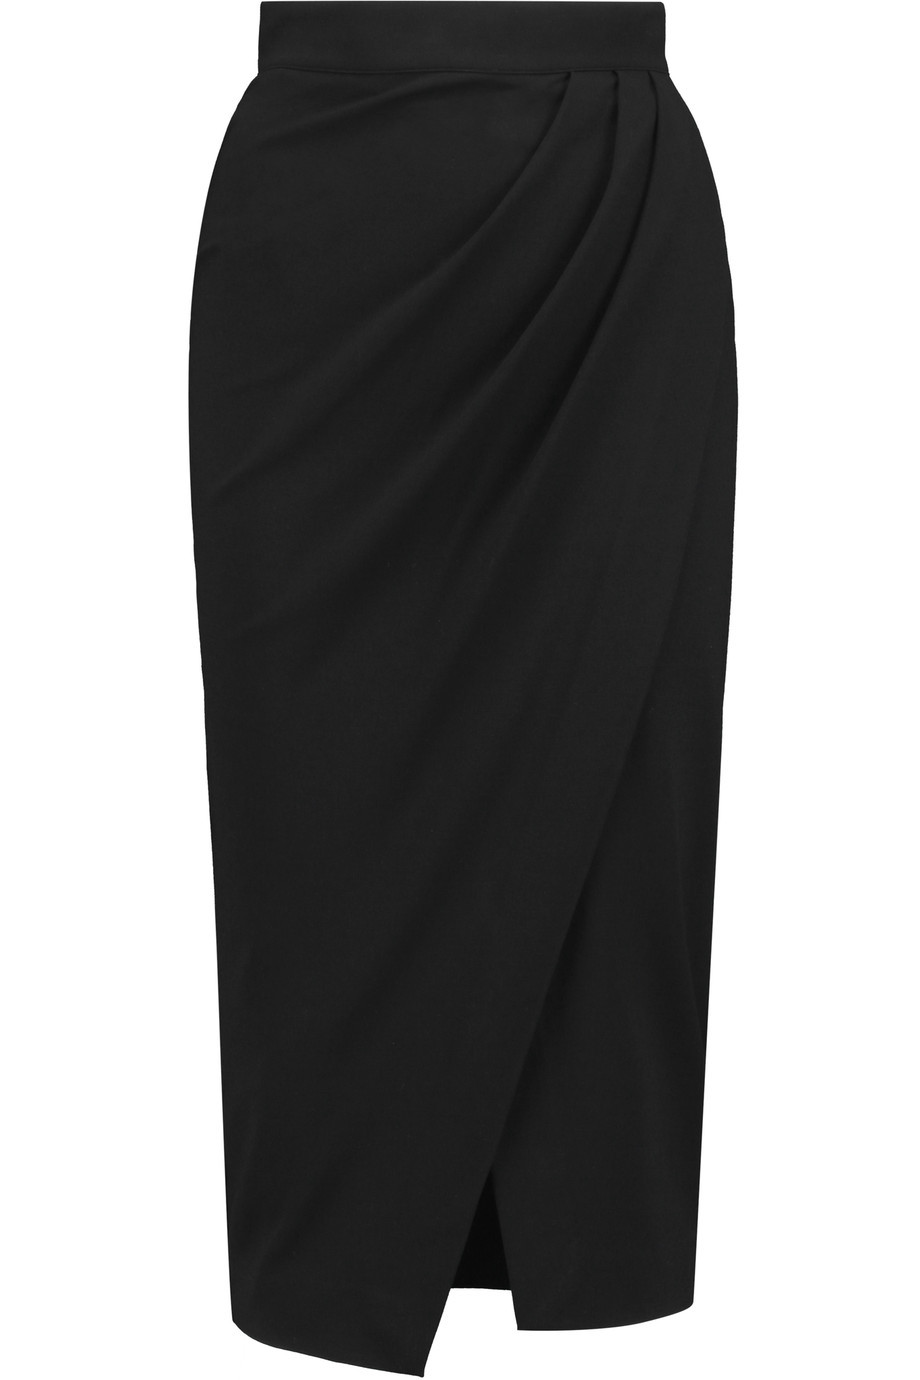 Amber Wrap Effect Ponte Jersey Skirt Black - length: below the knee; pattern: plain; style: pencil; fit: body skimming; waist: mid/regular rise; predominant colour: black; occasions: evening, creative work; fibres: viscose/rayon - stretch; pattern type: fabric; texture group: jersey - stretchy/drapey; season: s/s 2016; wardrobe: basic